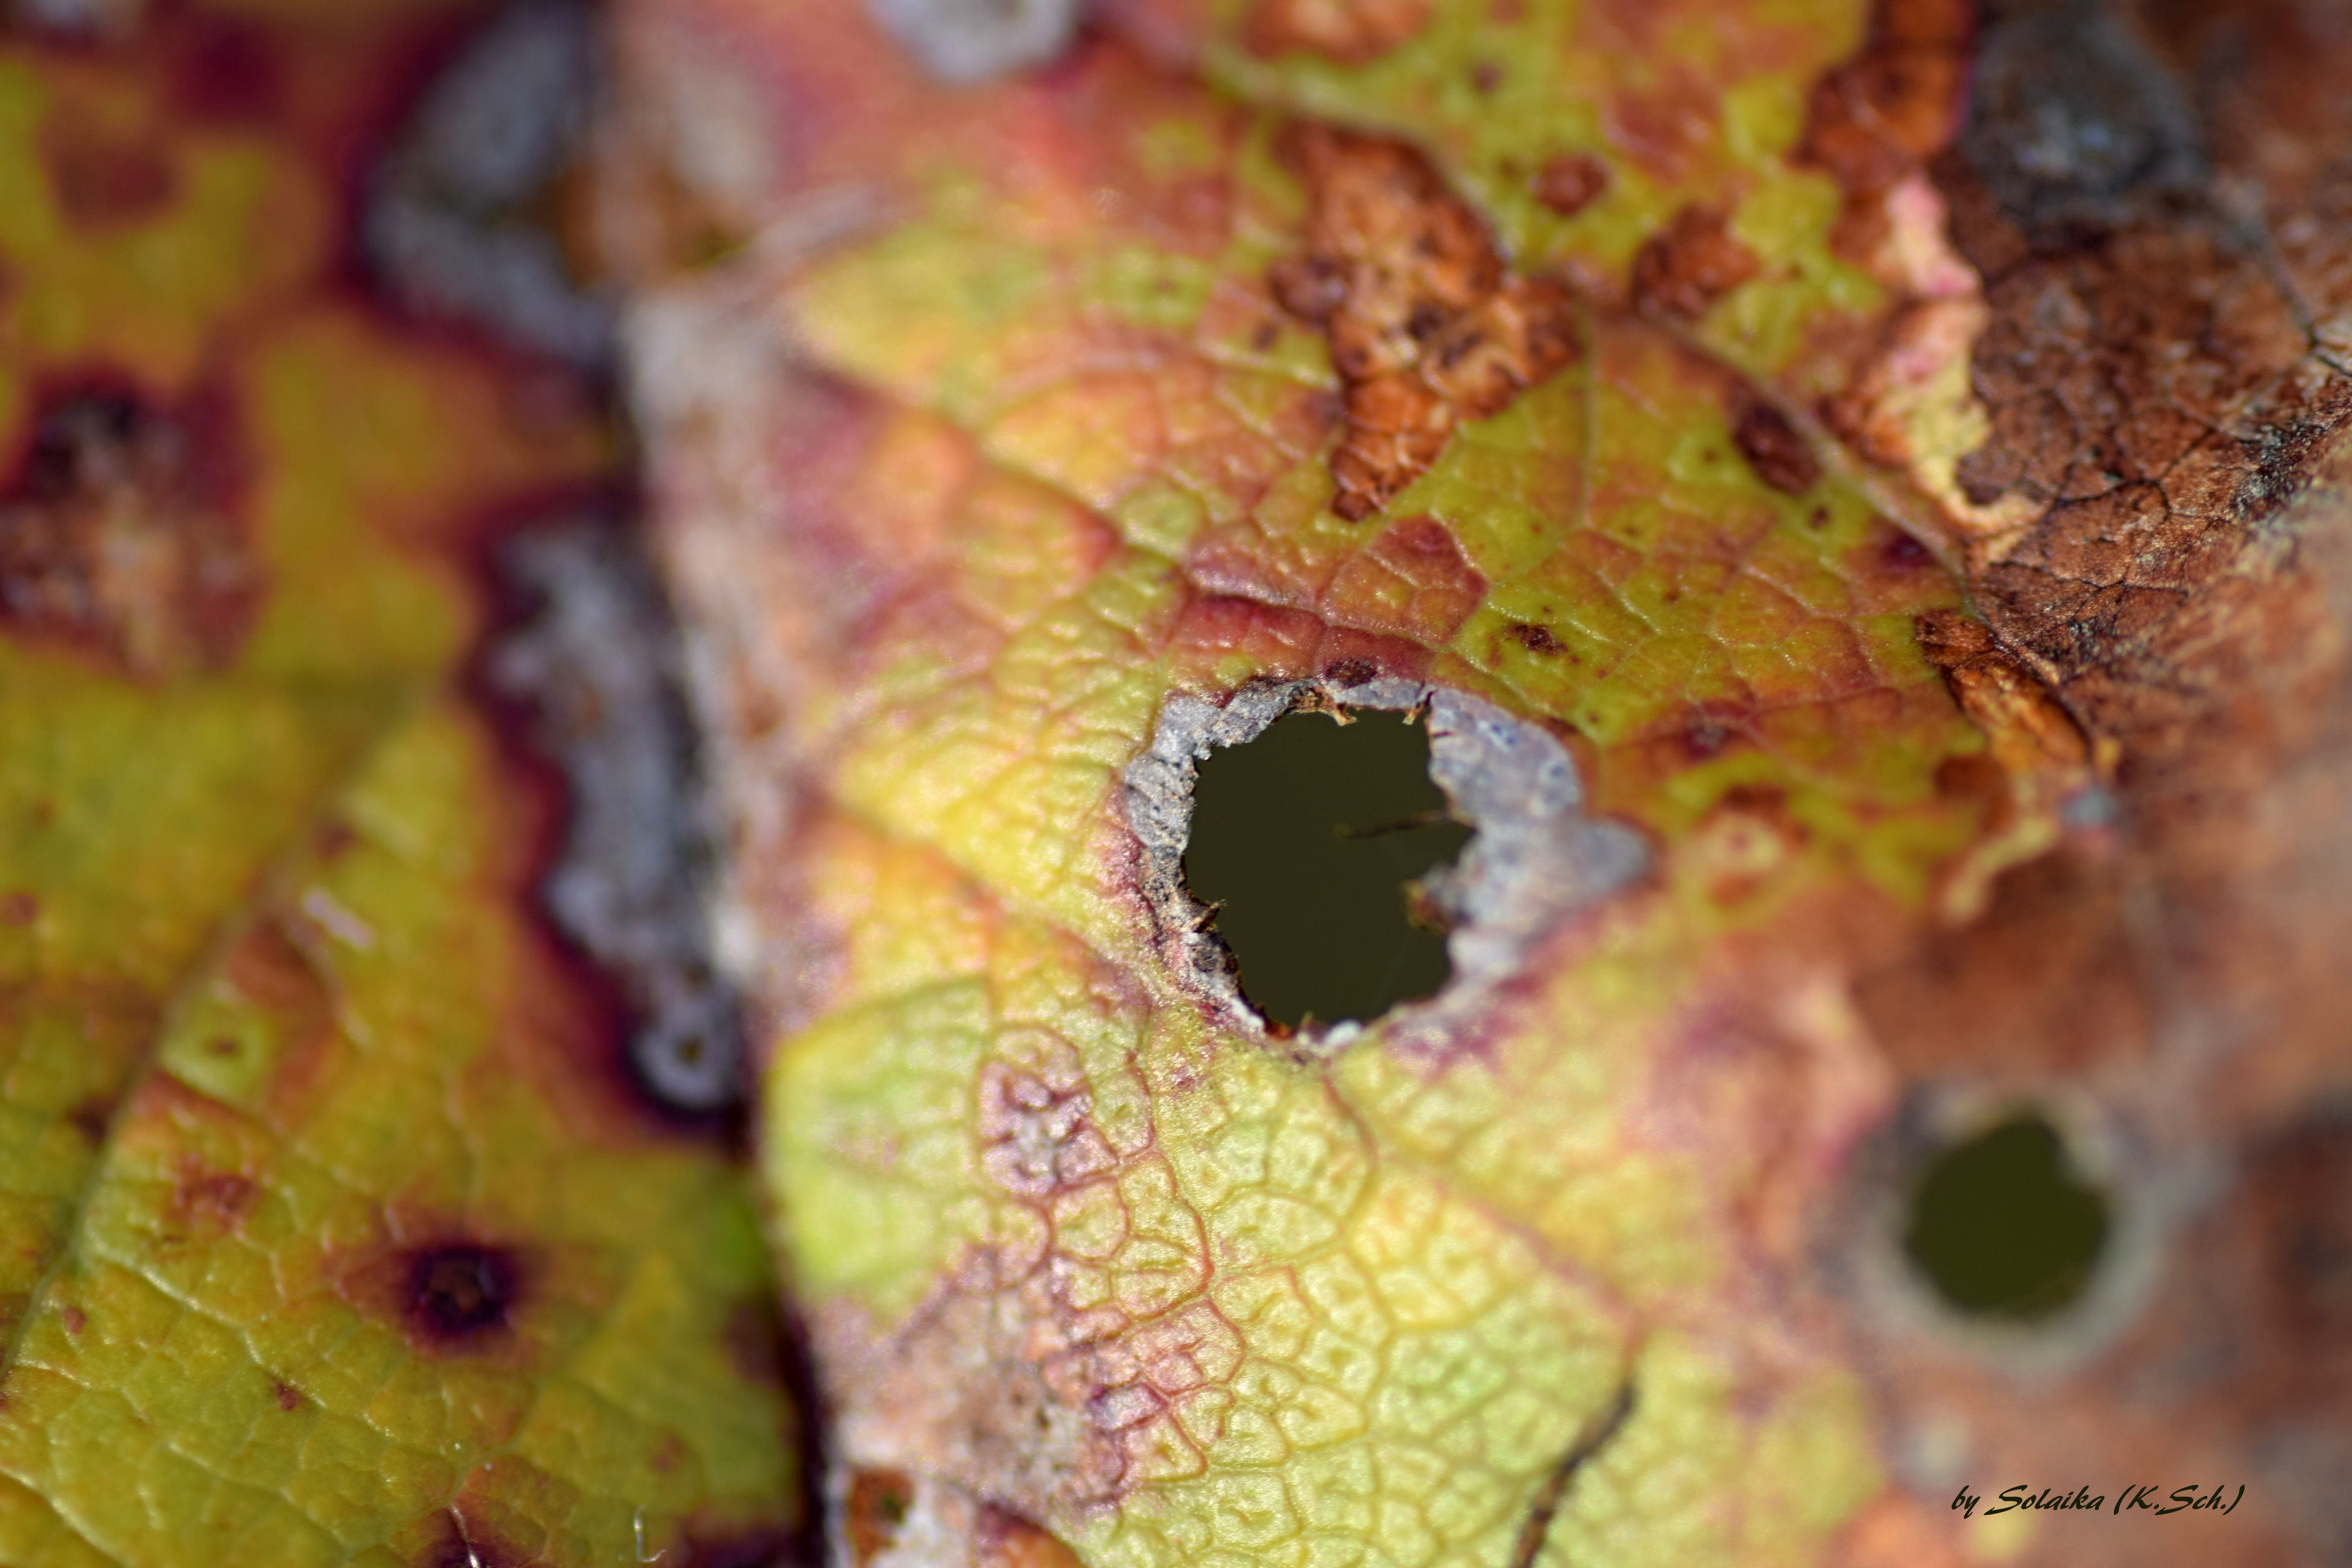 leaf, close-up, leaf vein, natural pattern, autumn, textured, nature, full frame, backgrounds, focus on foreground, selective focus, yellow, pattern, outdoors, change, day, detail, season, growth, no people